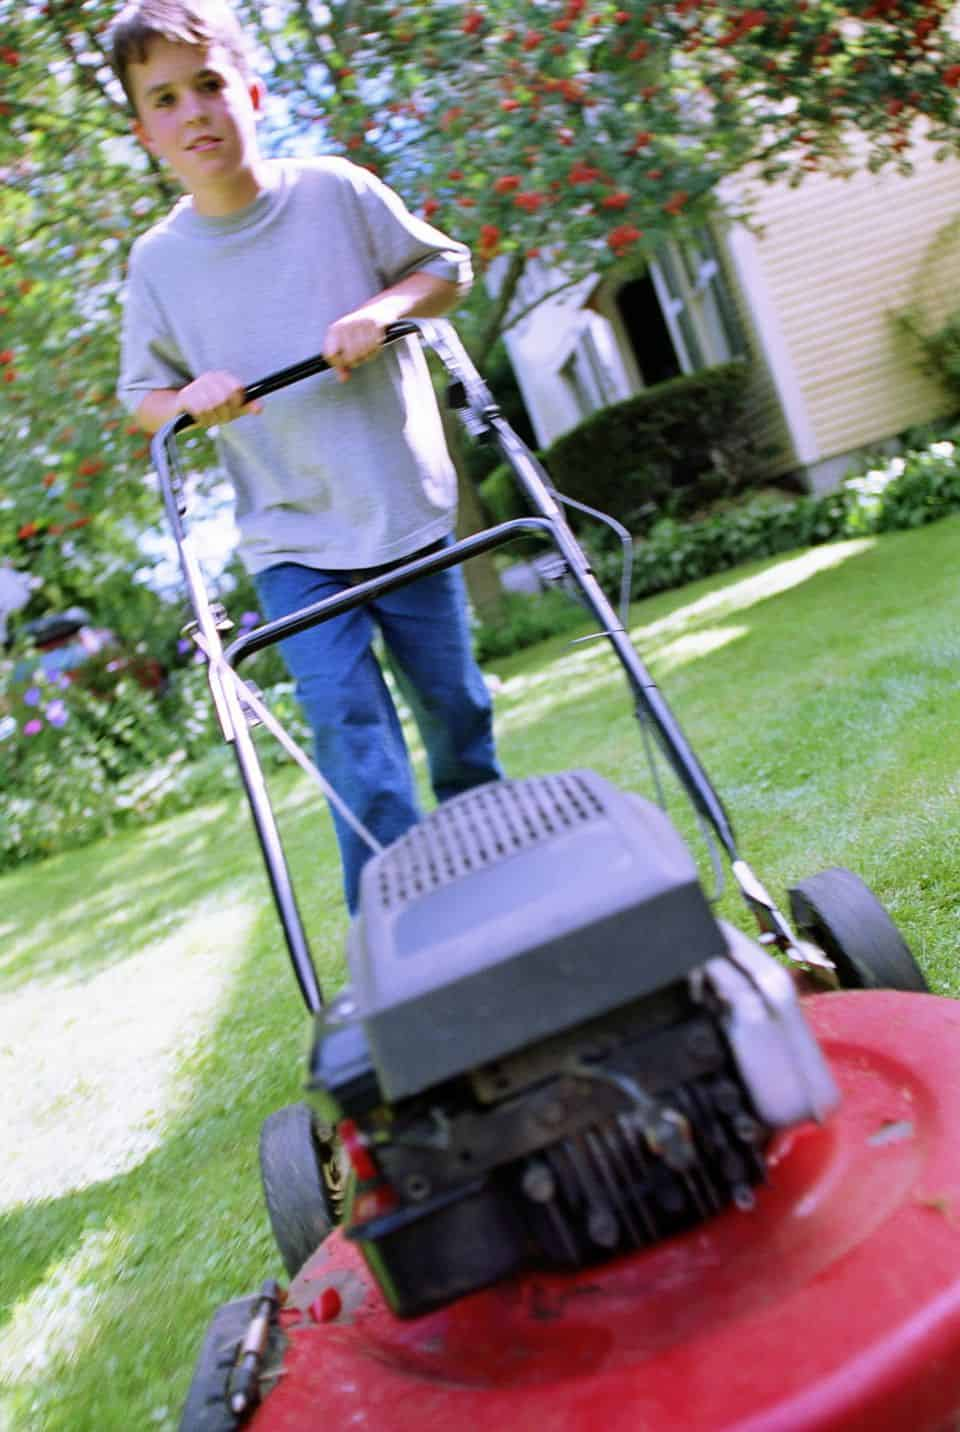 Find a mower that honors you and/or the person who will be using it.